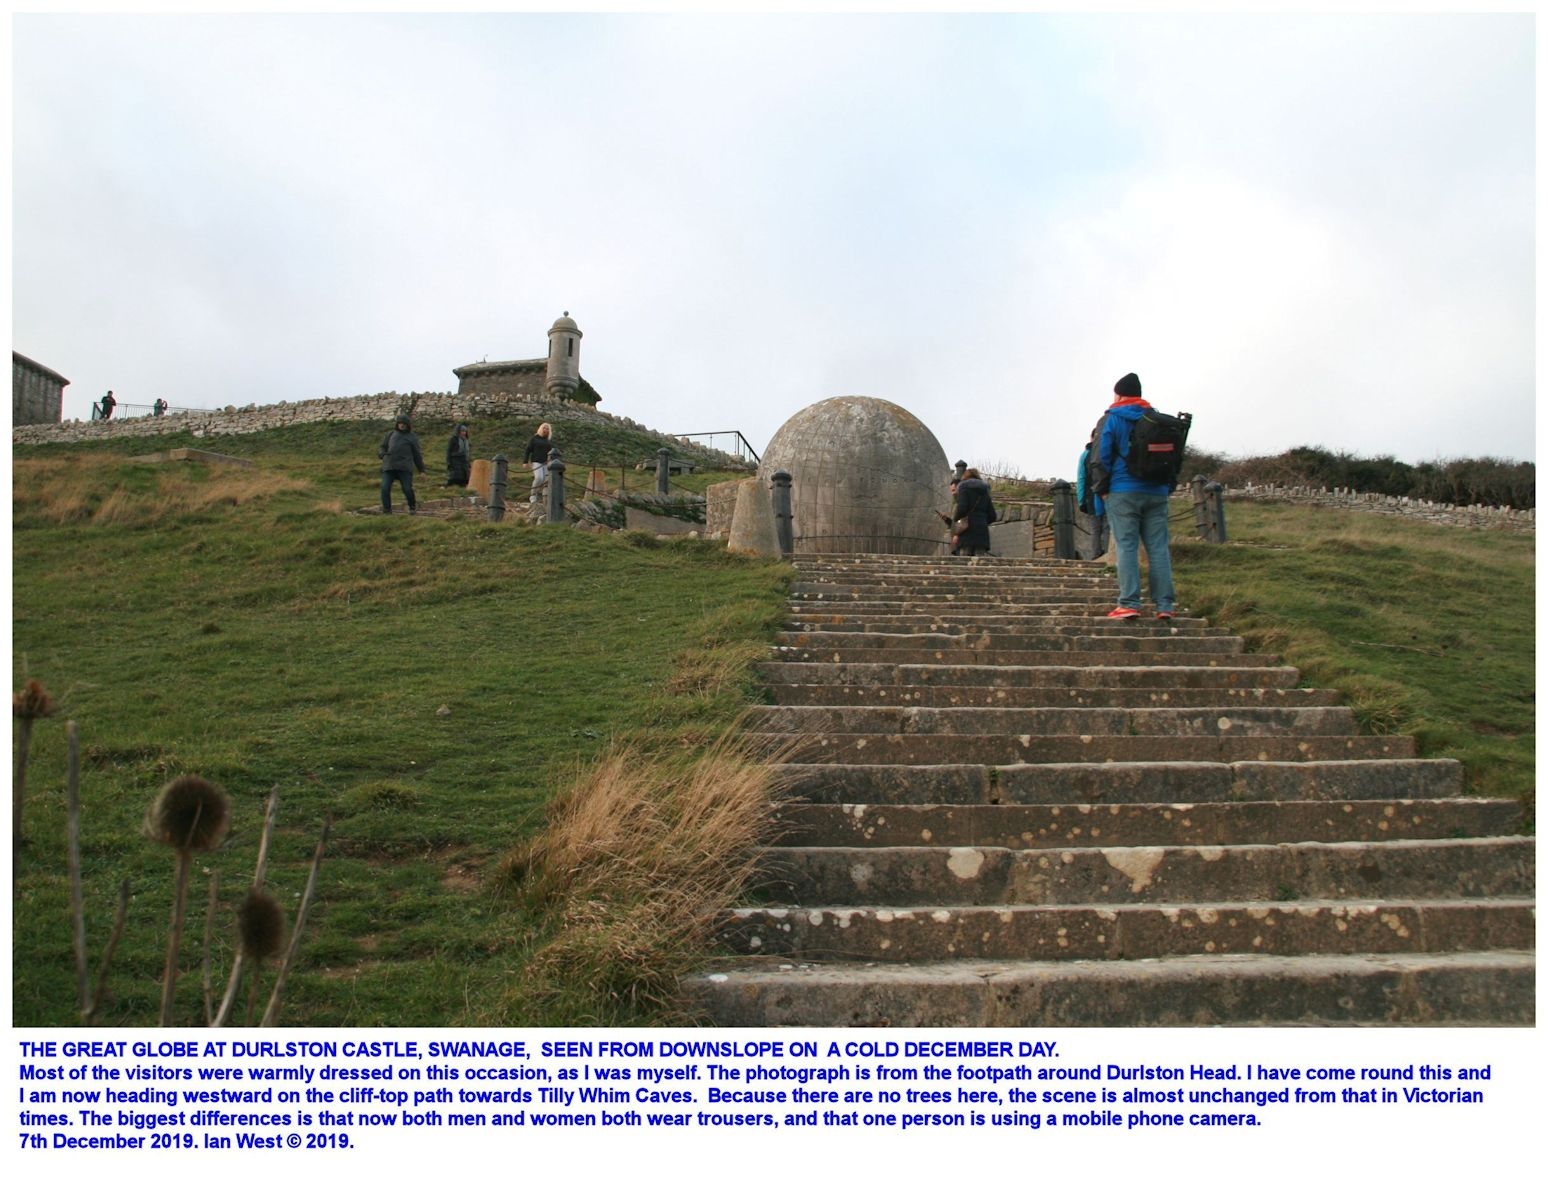 The Great Globe at Durlston Castle, Durlston Head, Dorset, seen from further down the slope on a cold day, 7th December 2019